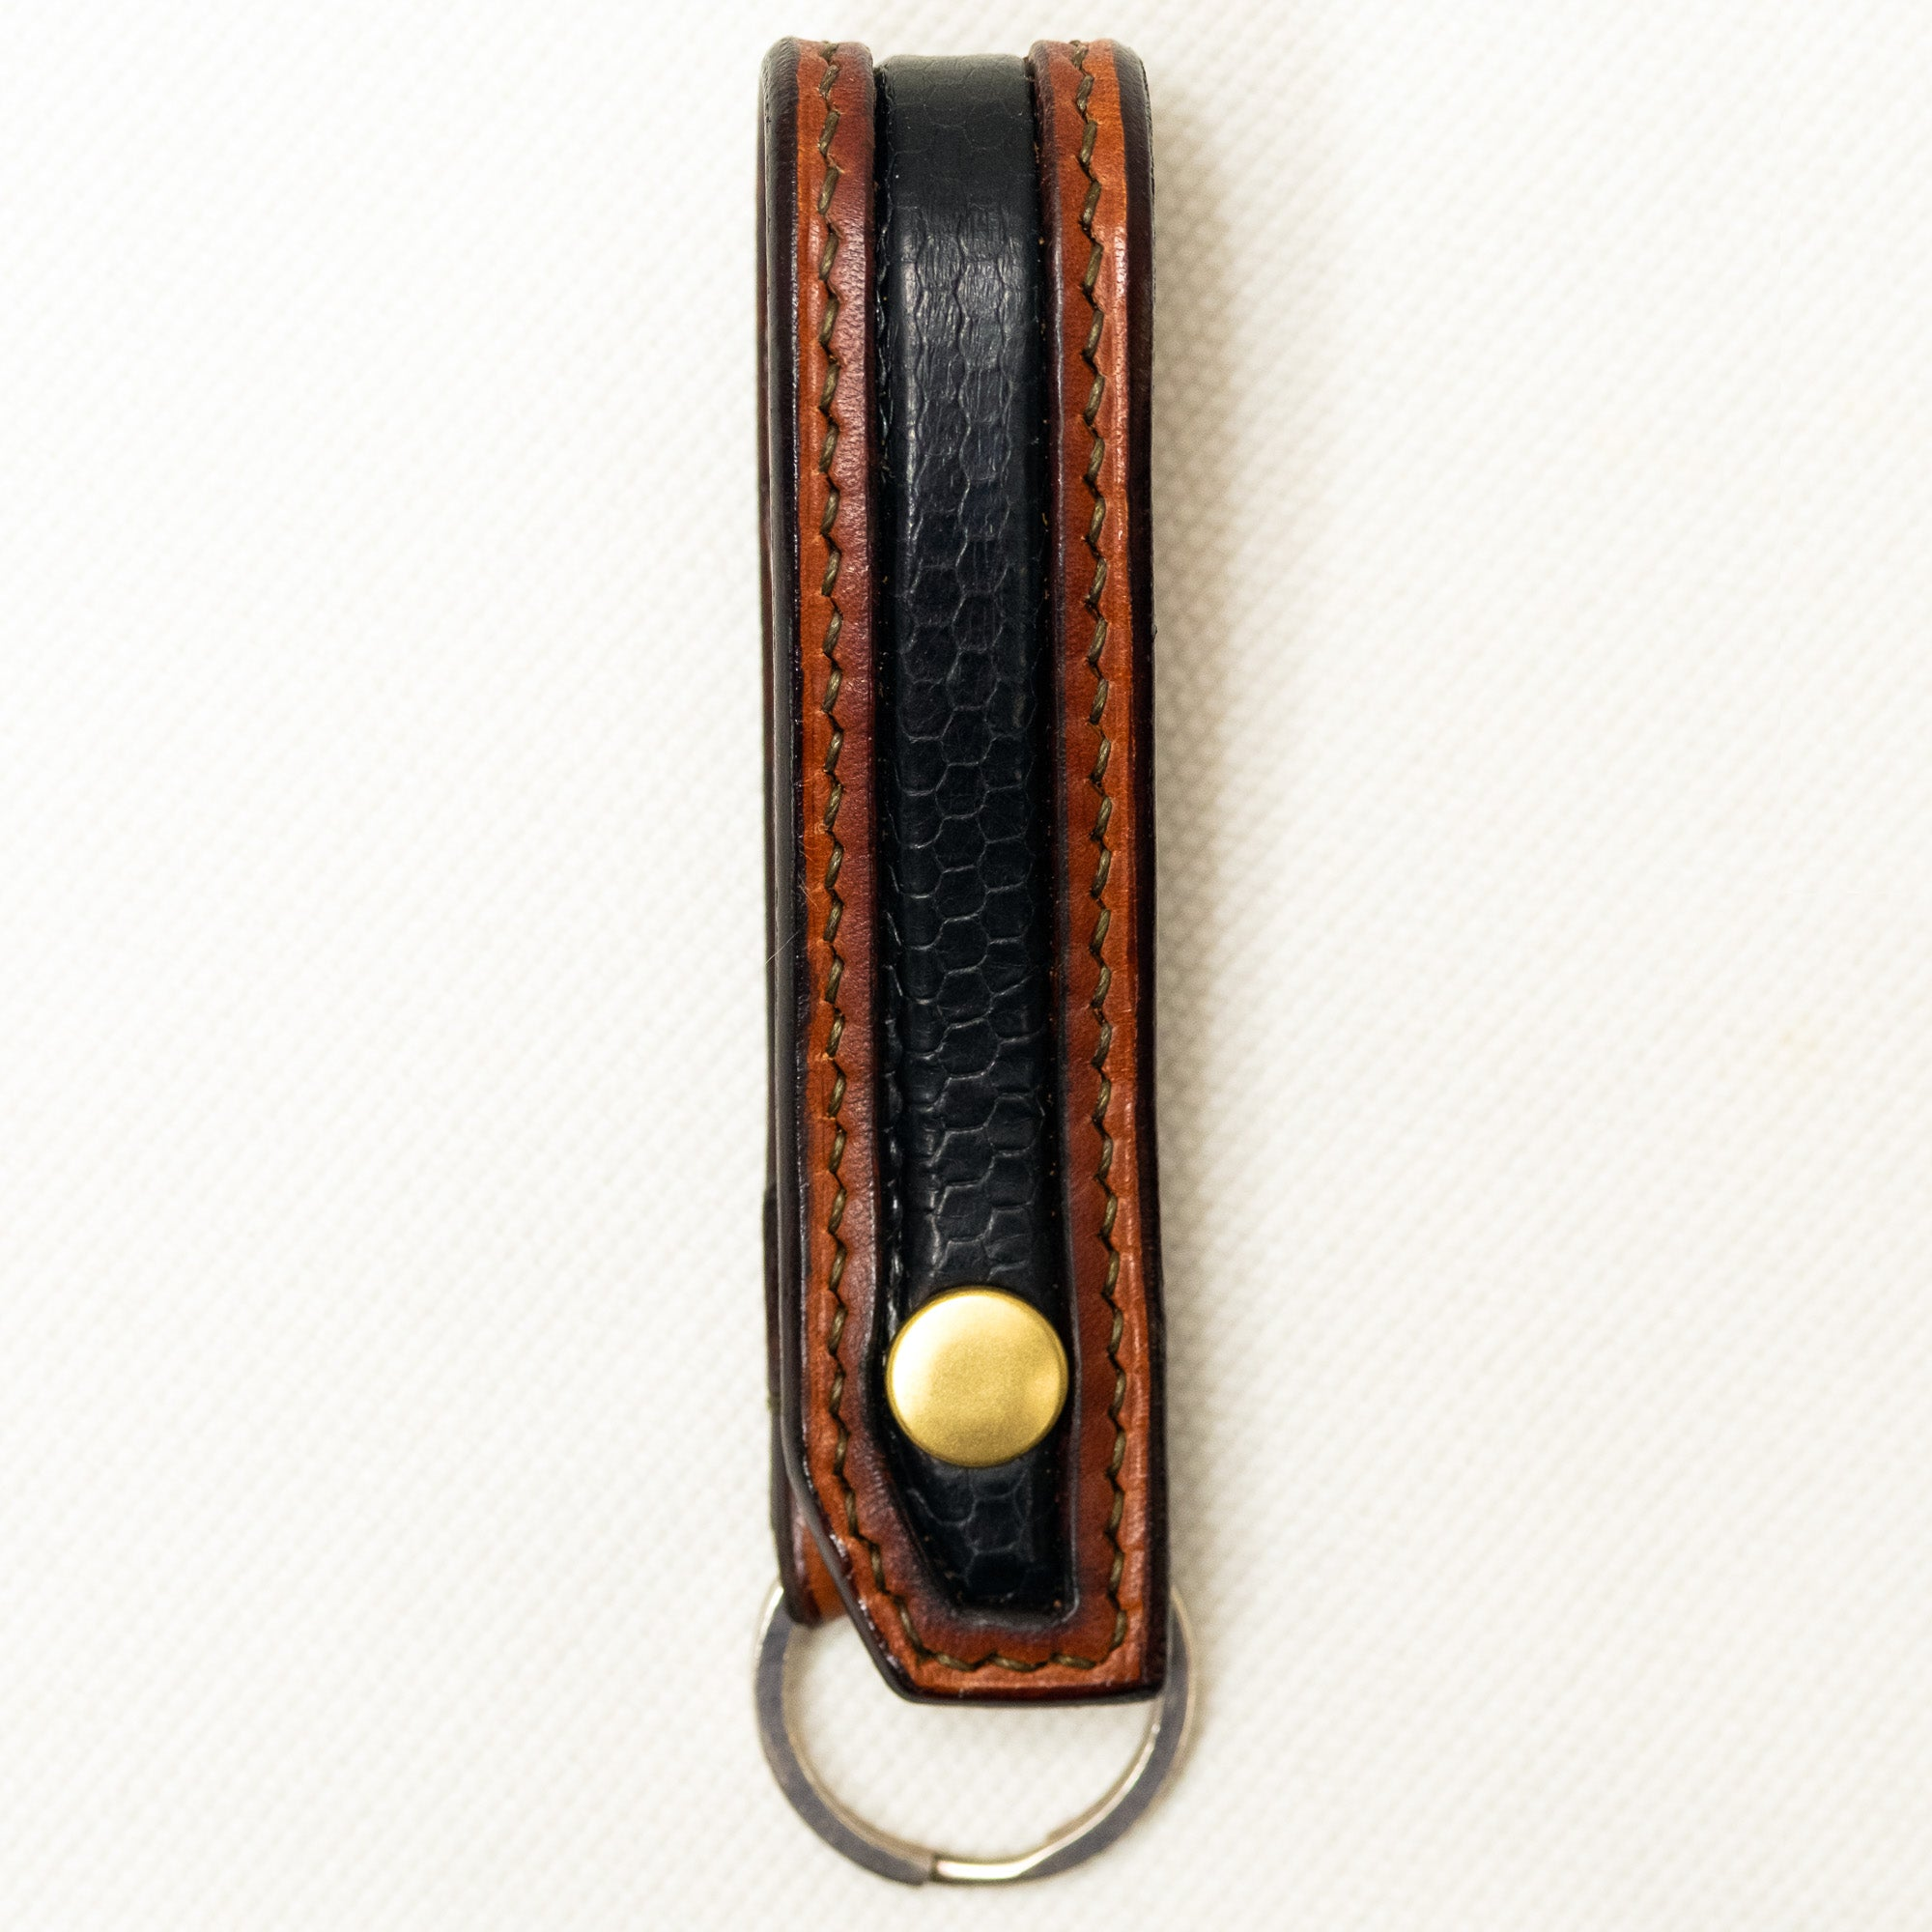 URBAN LUPE- Snakeskin belt loop key chain